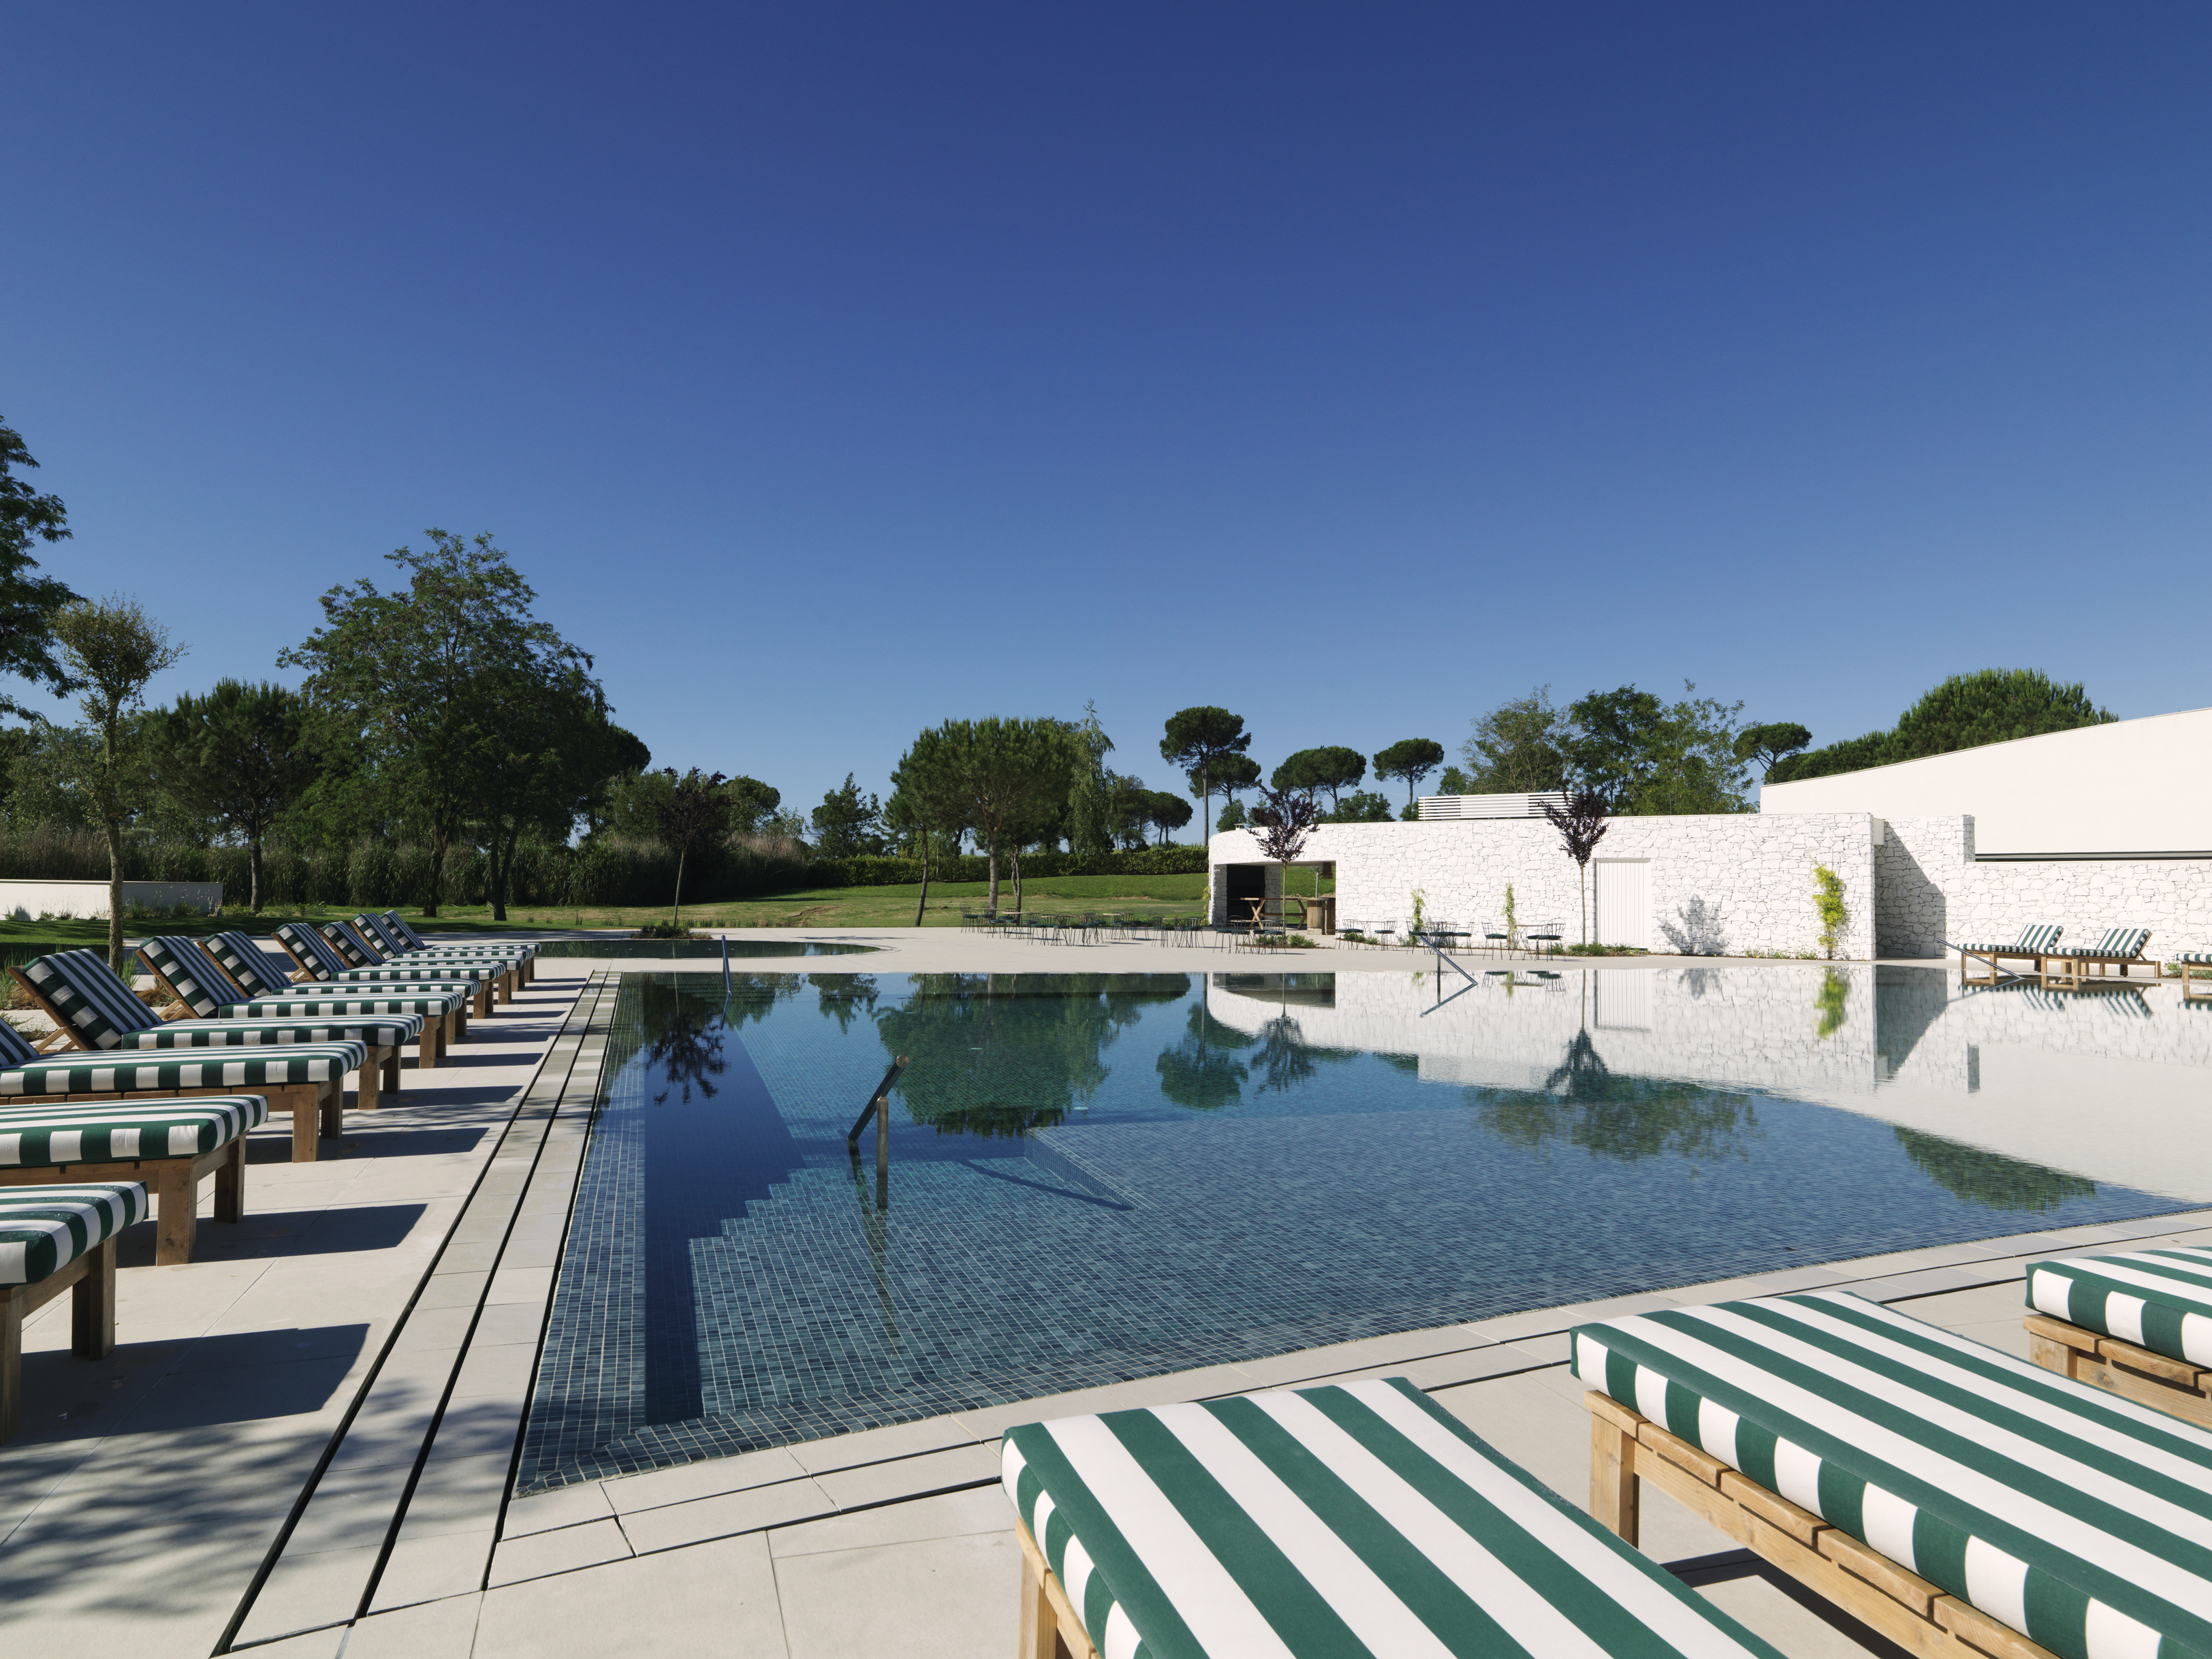 Hotel Camiral Pool Image 2